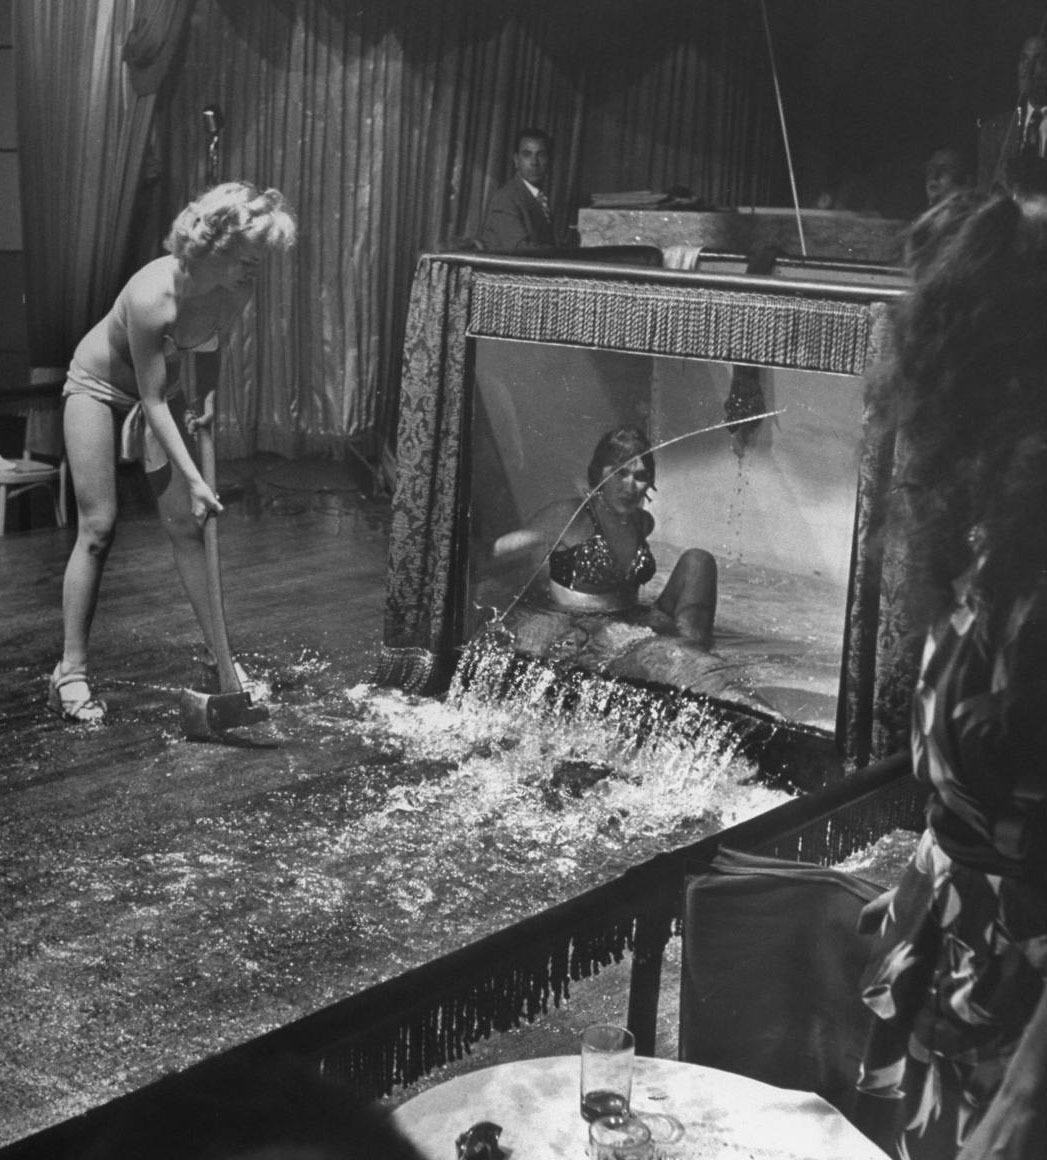 hight resolution of stripper evangeline sylvas angrily breaking the water tank being history